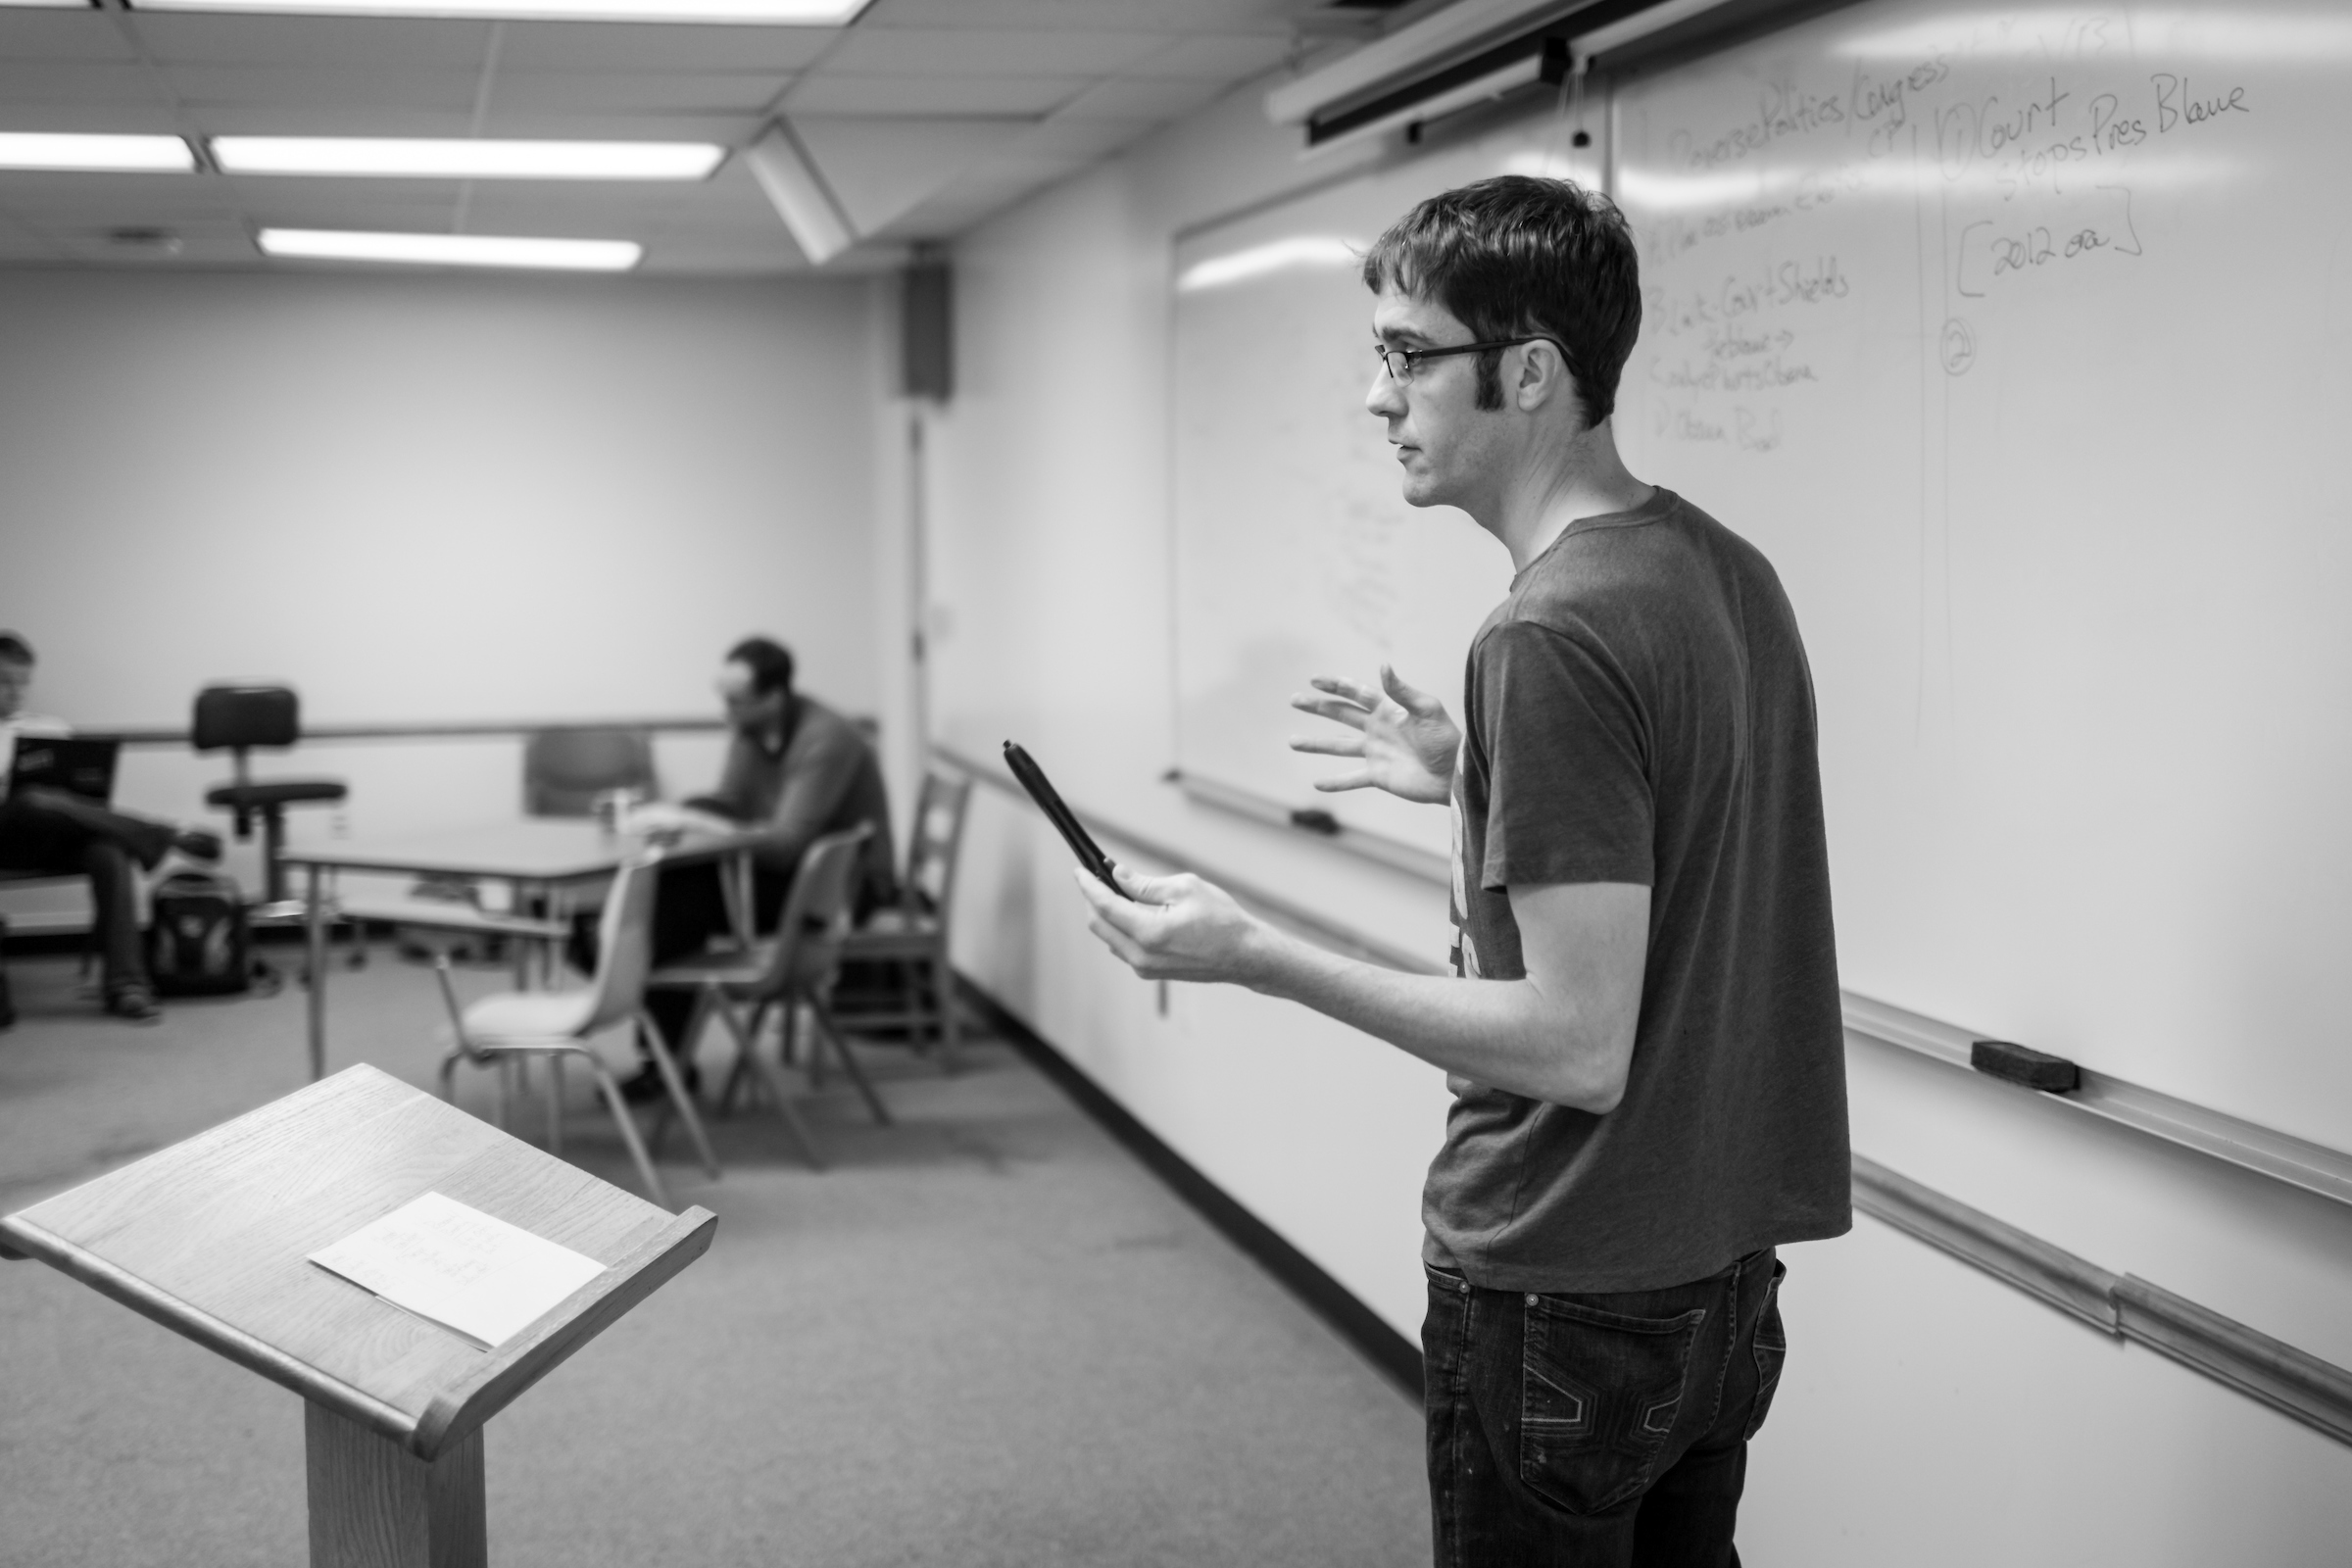 The Wake Forest debate team holds their weekly meeting in Carswell Hall on Wednesday, October 24, 2012.